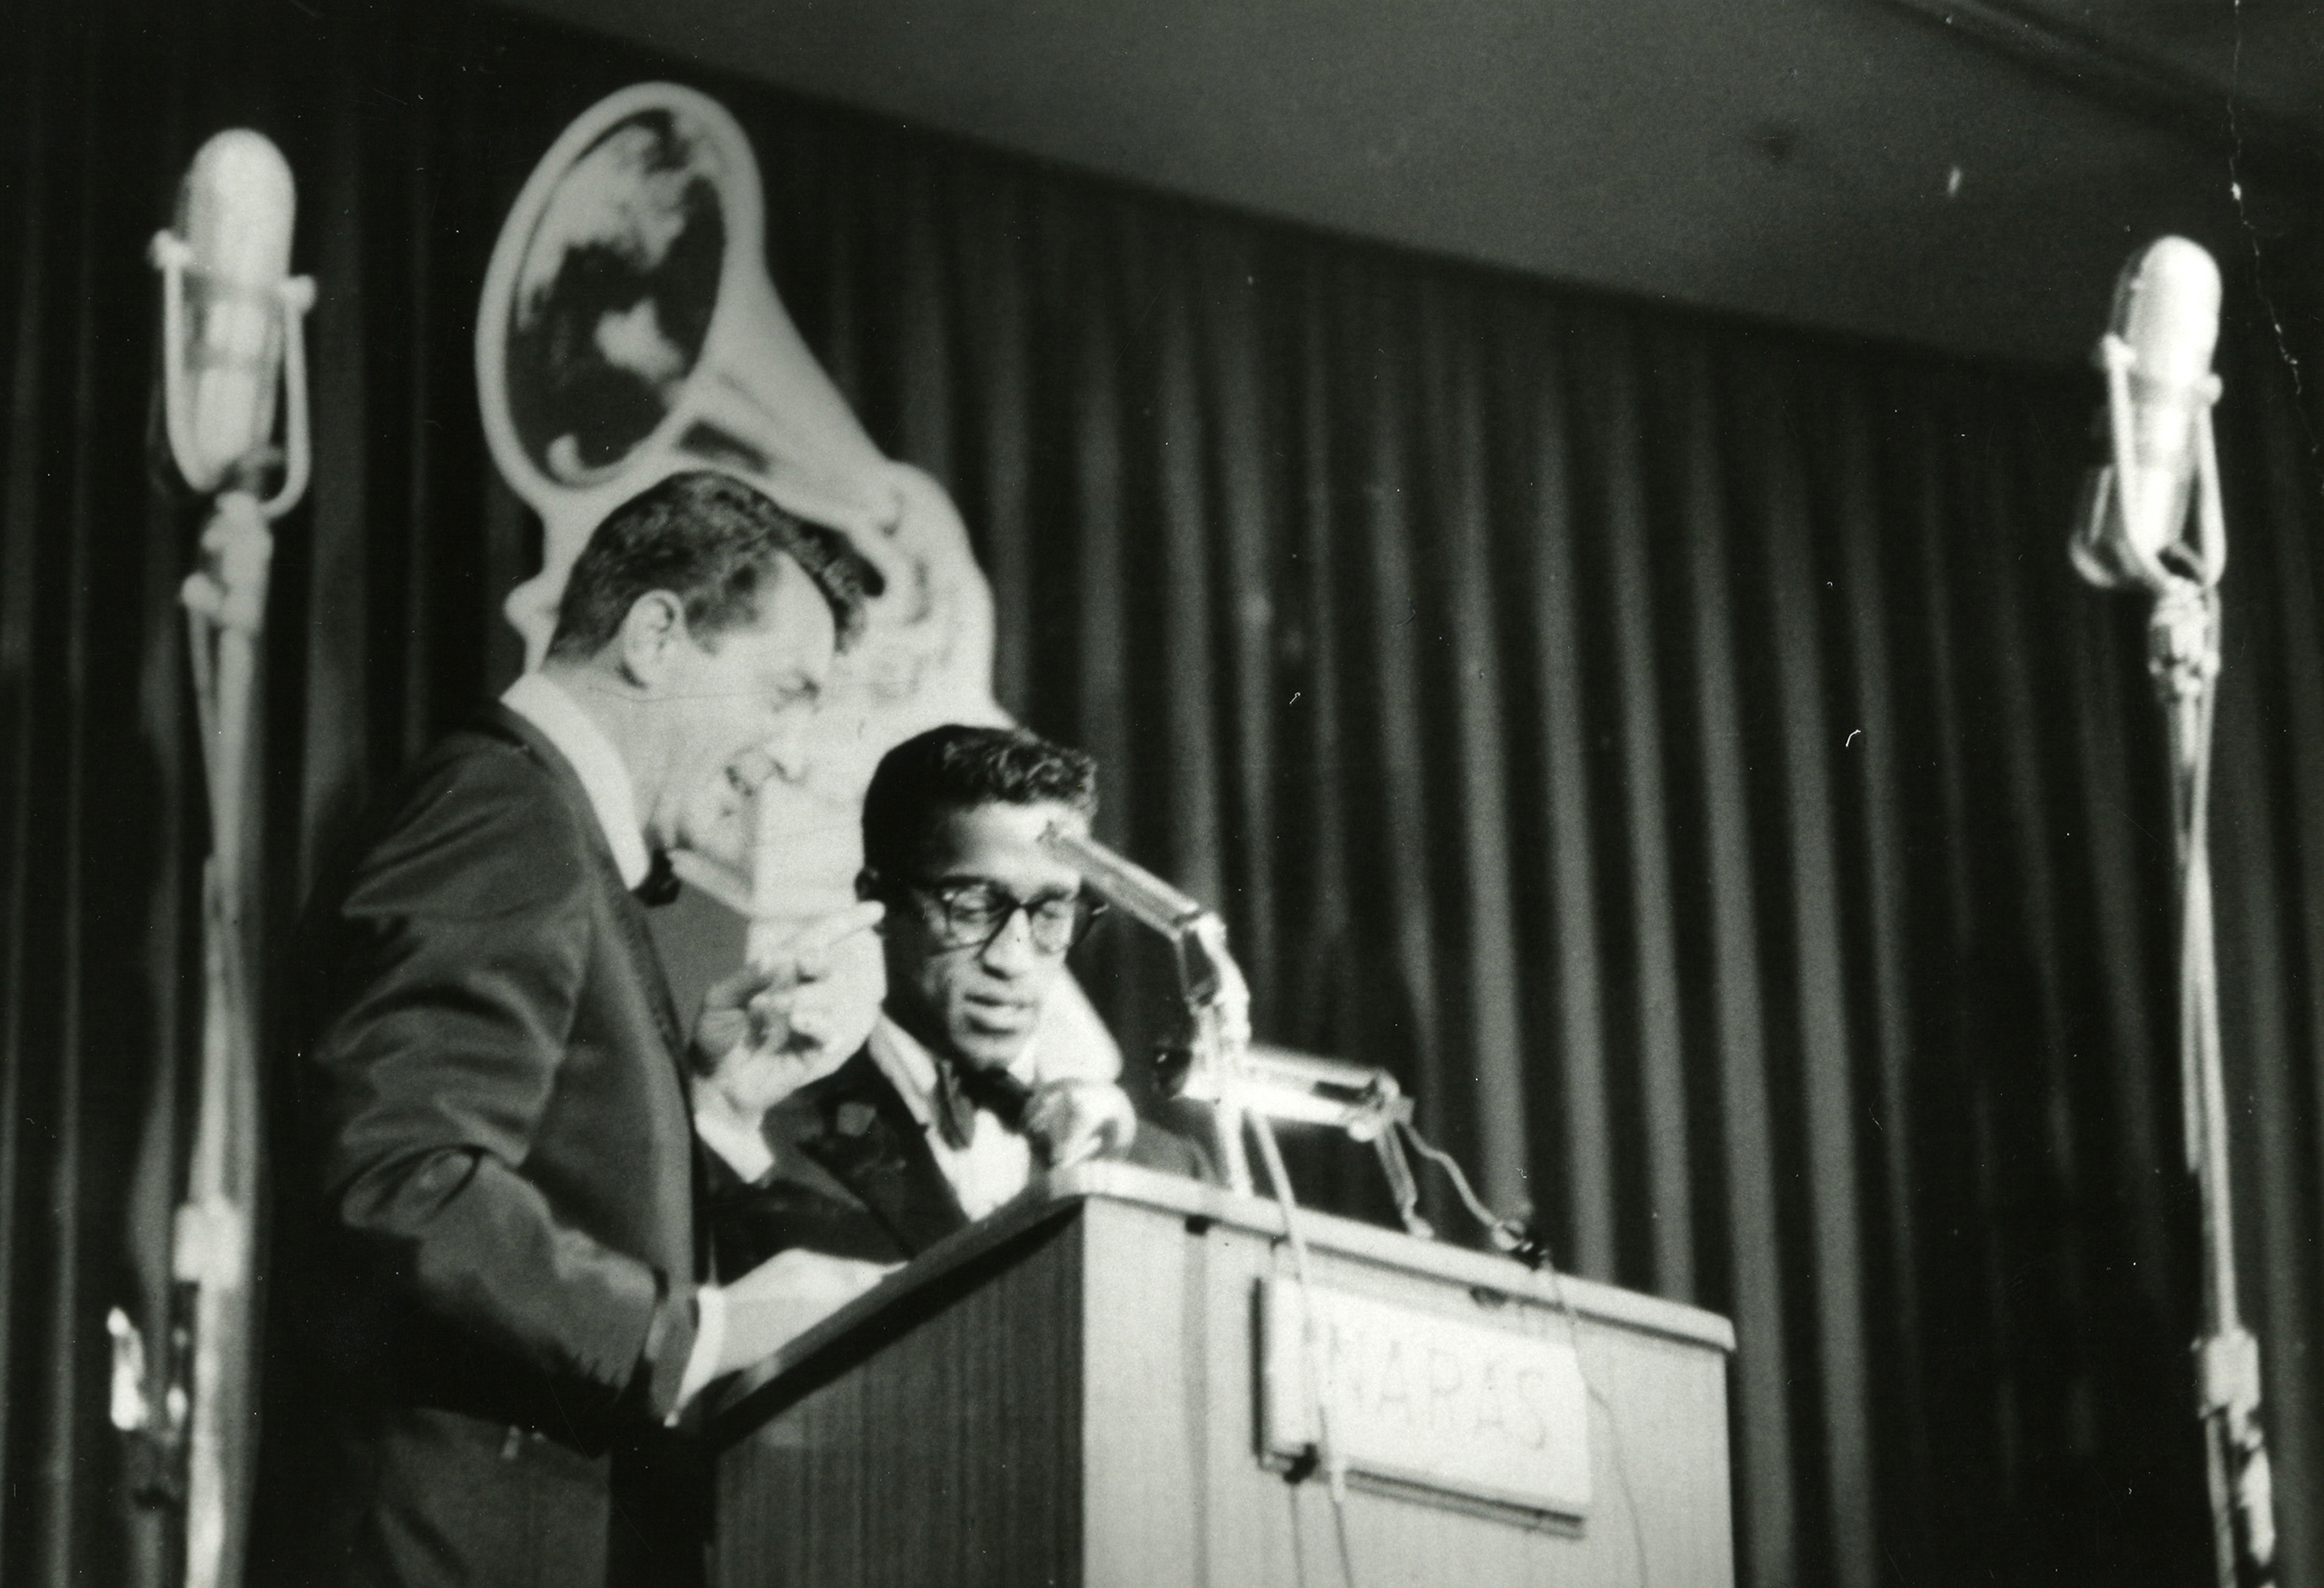 Dean Martin and Sammy Davis Jr. at the 1st GRAMMY Awards